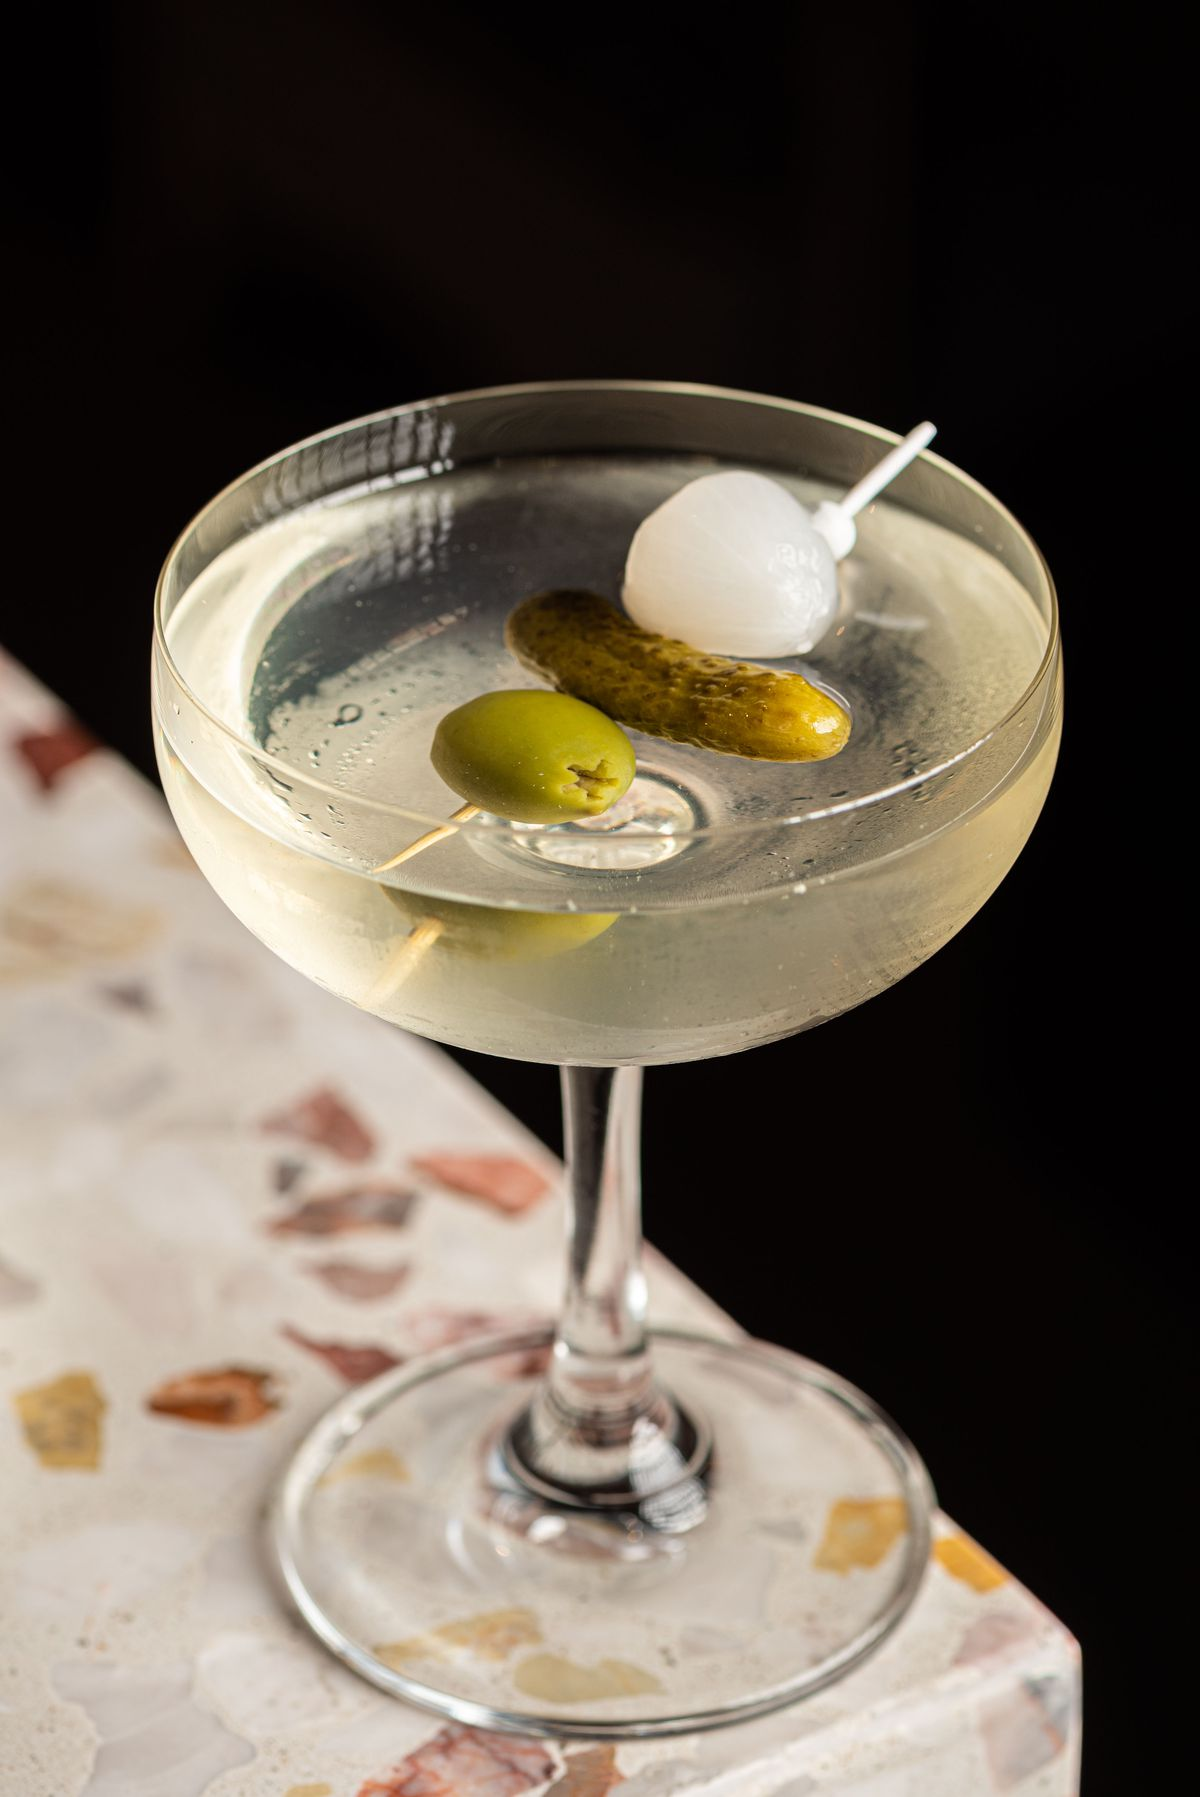 A riff on a martini in a coup glass with dill pickle brine, vodka, and olive garnishes.